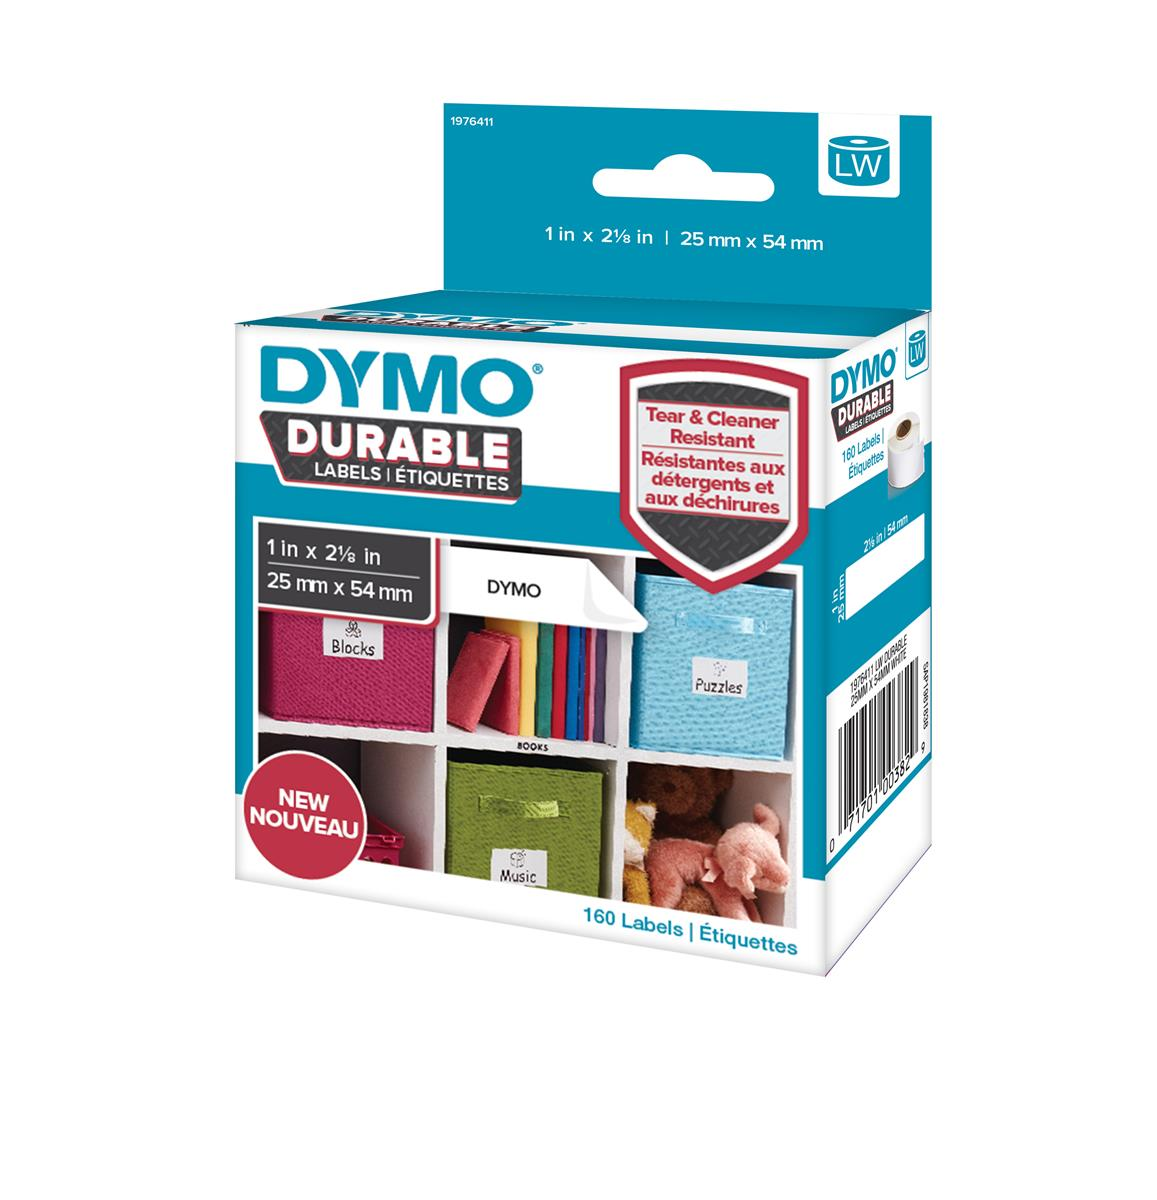 Dymo Durable Labels D1 Tape Temperature UV and Water Resistant 25mmx54mm White Ref 1976411 [Pack 160]